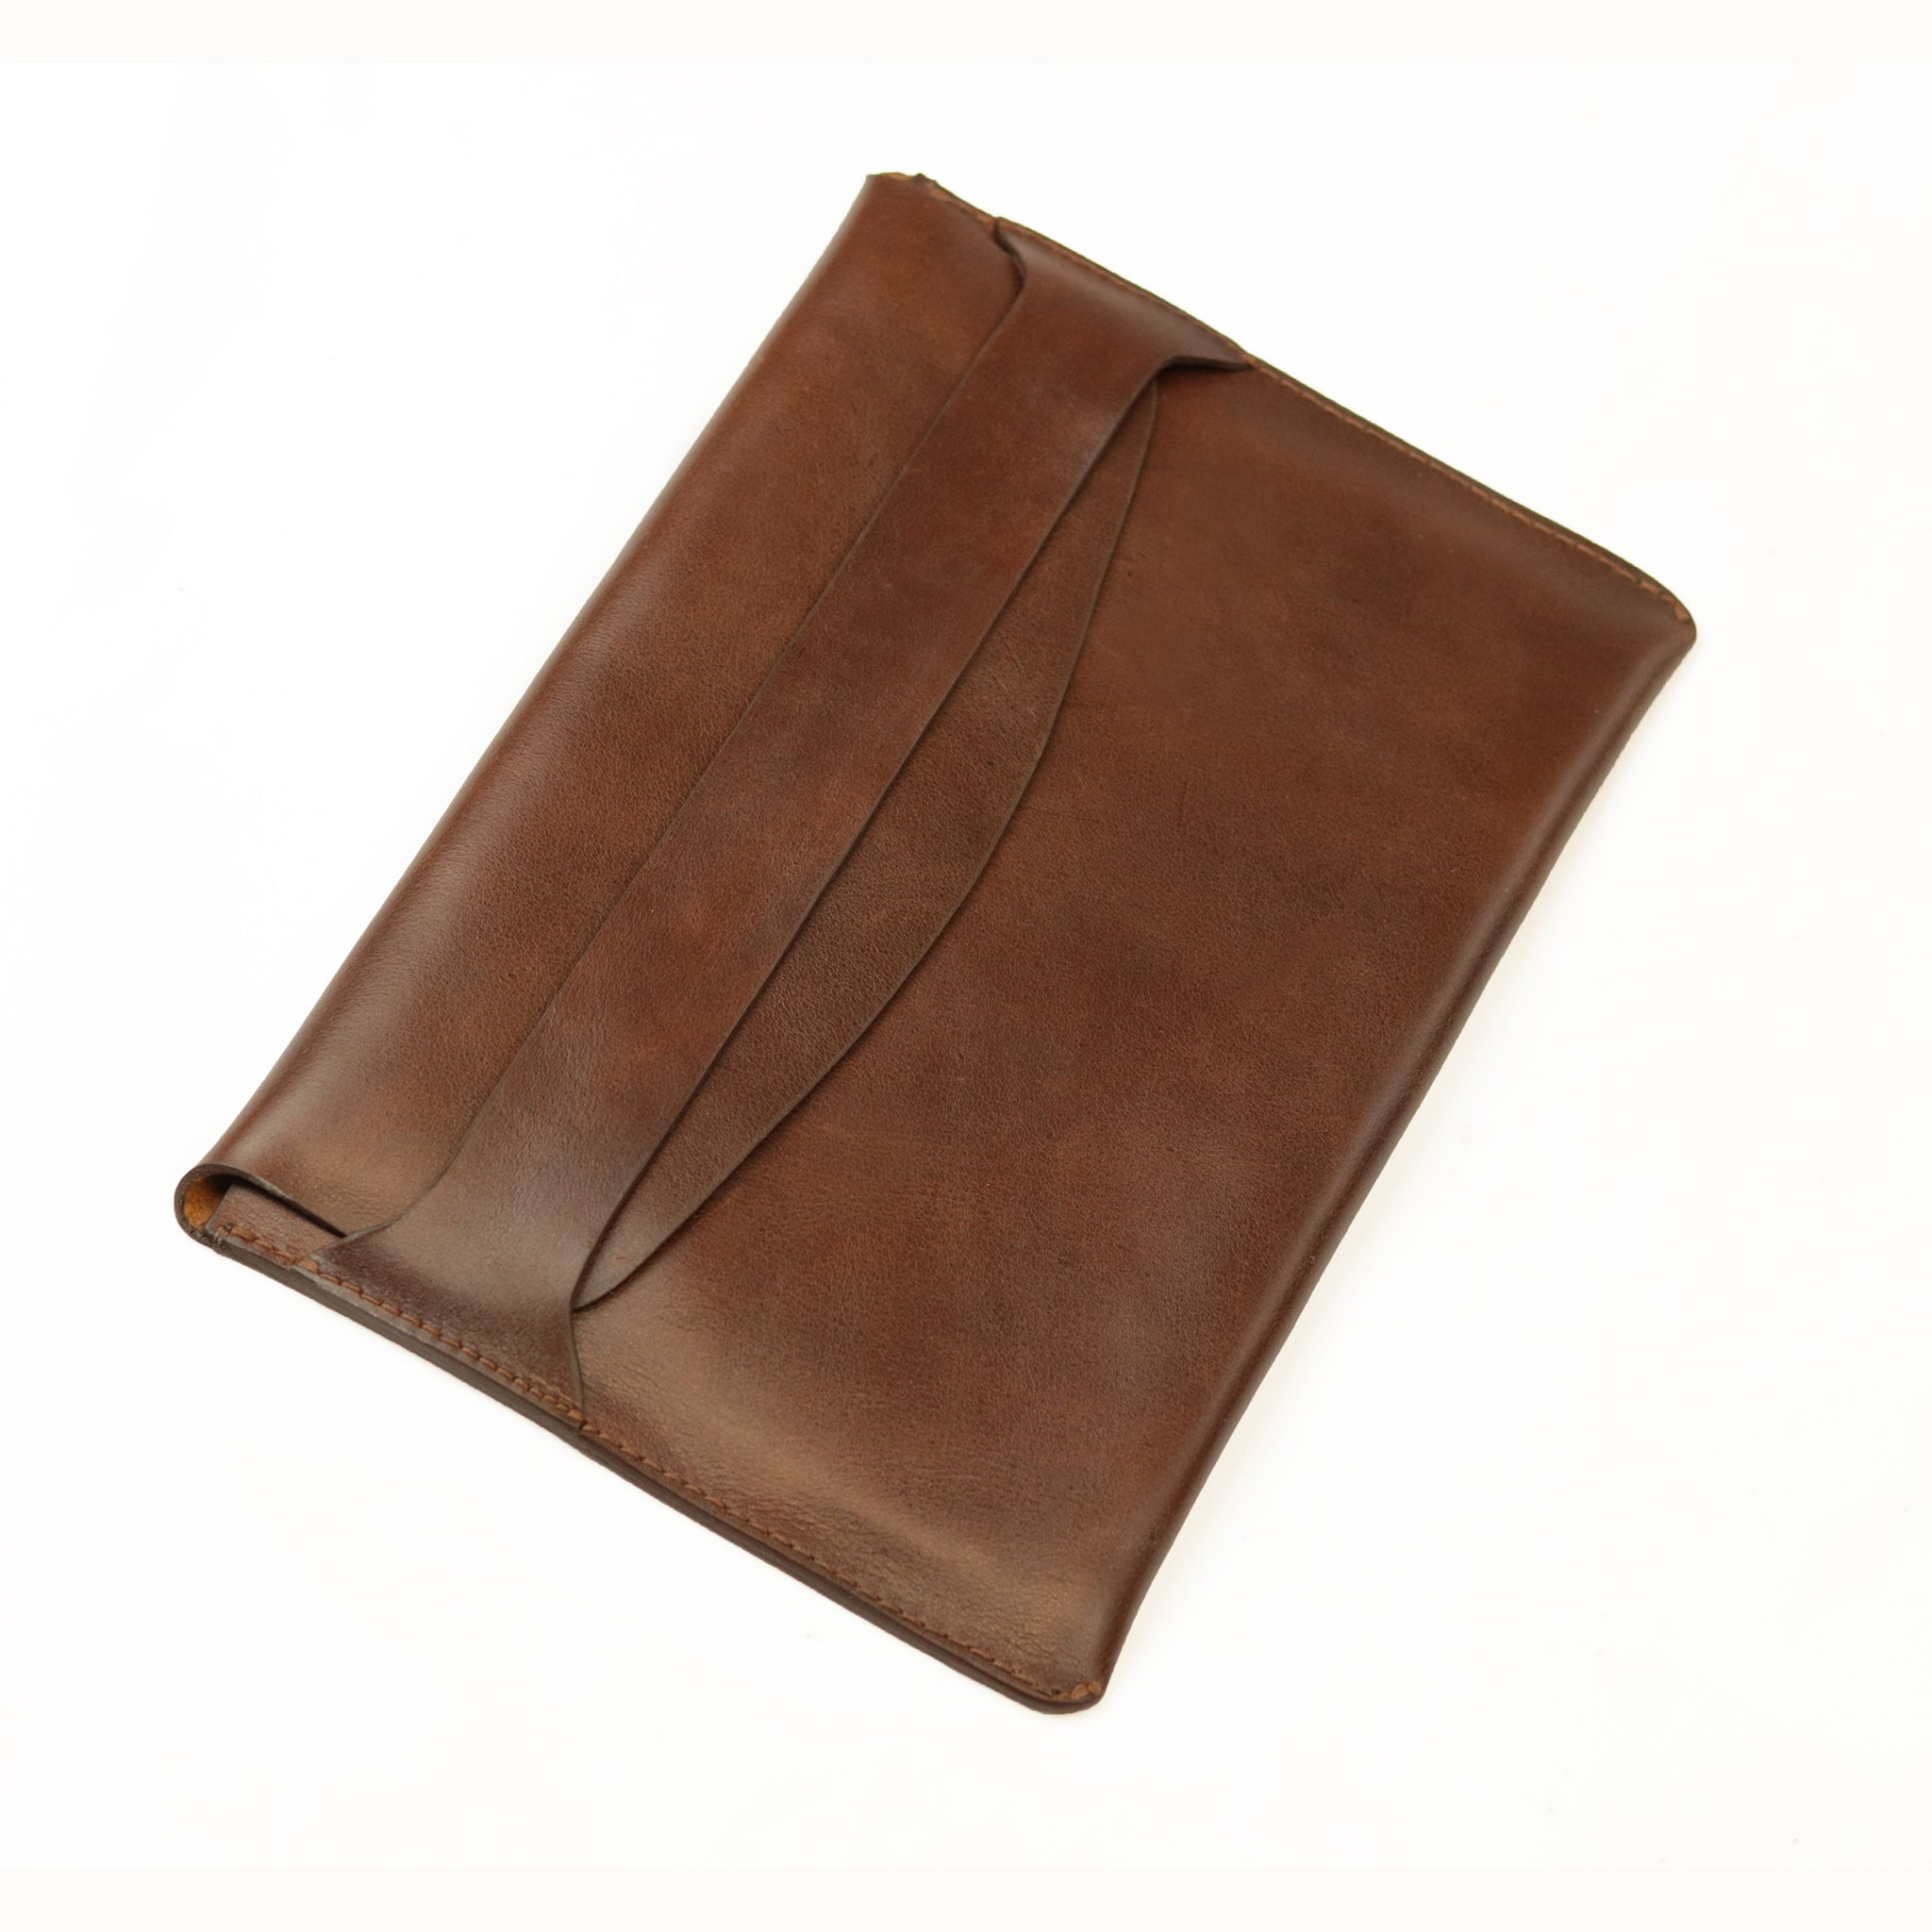 Leather iPad Holder - Brown - LeatherLately